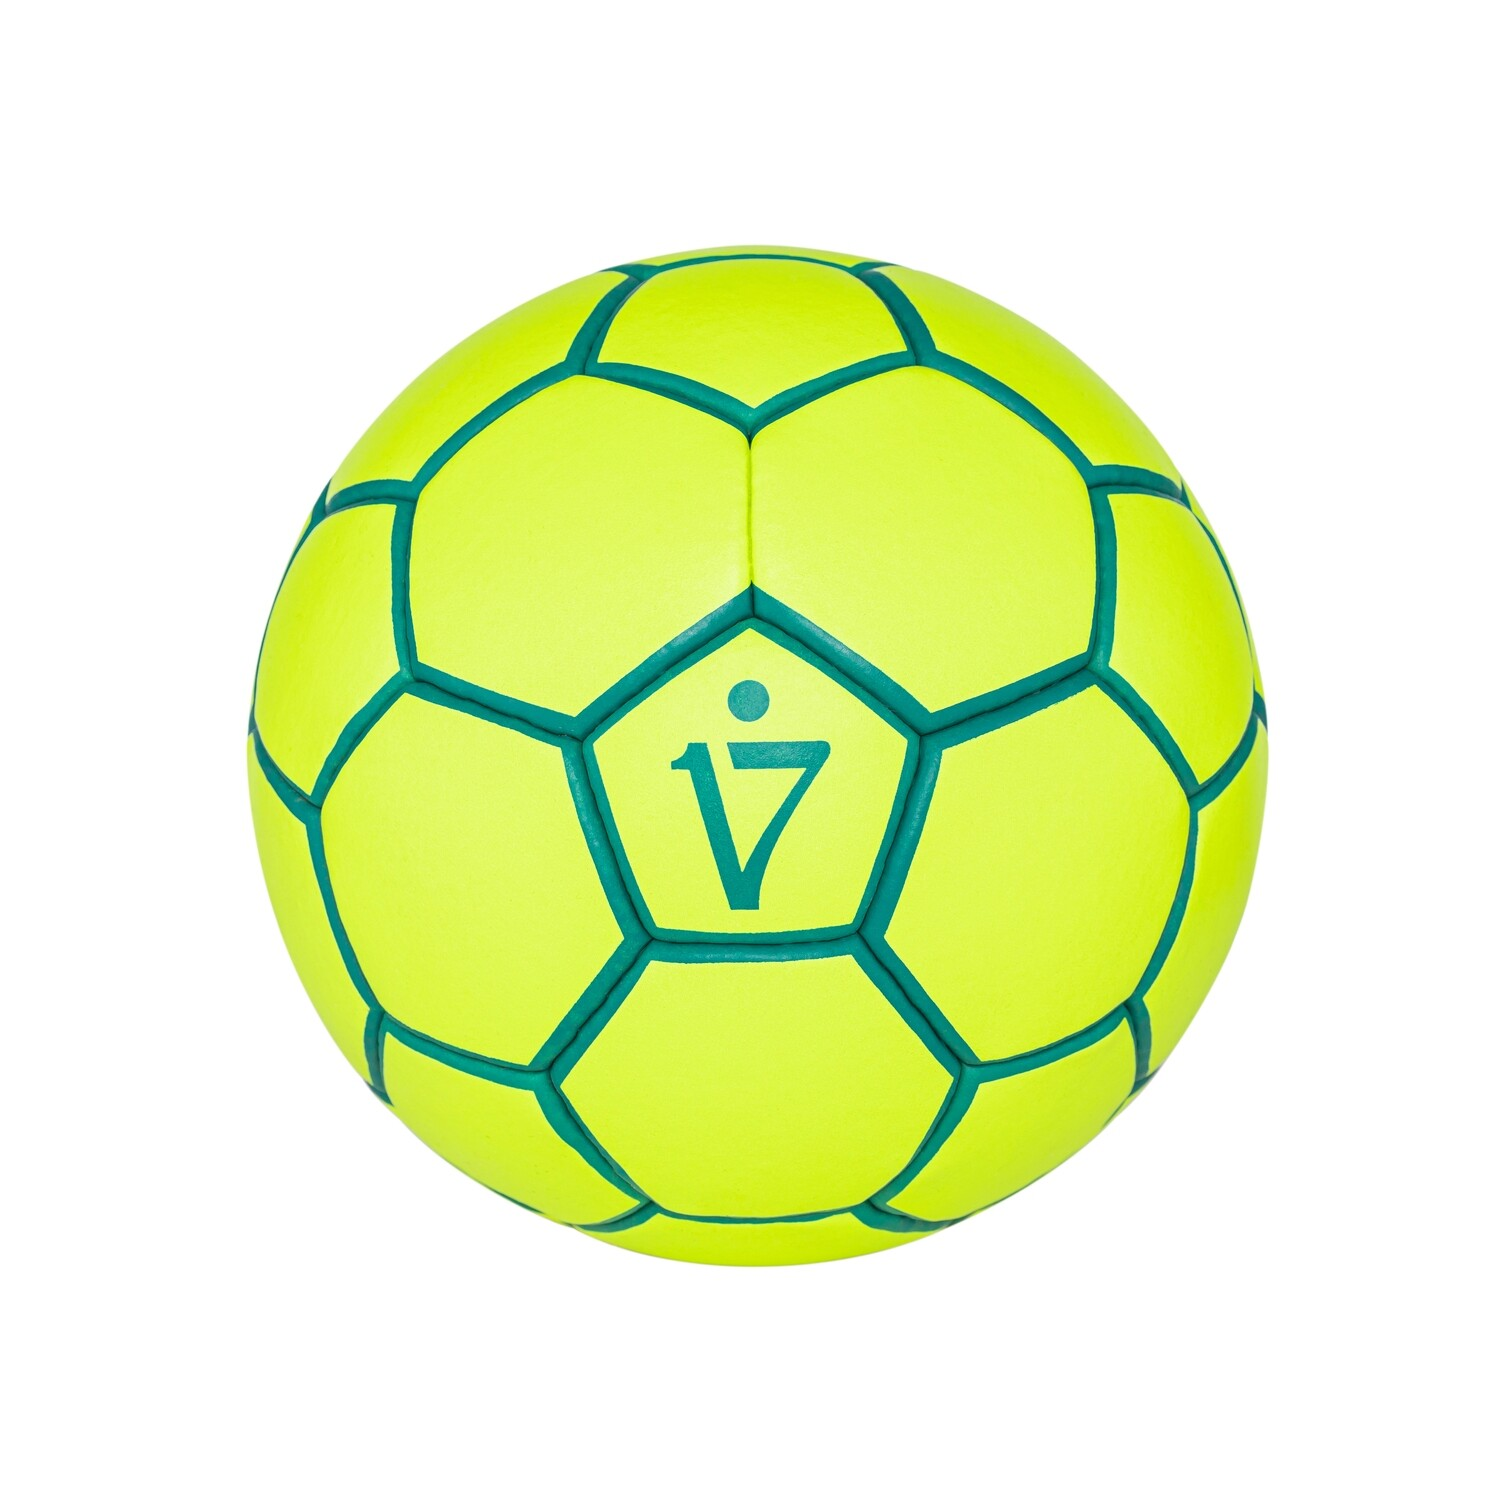 TRAININGSBALL LIME GR. 3